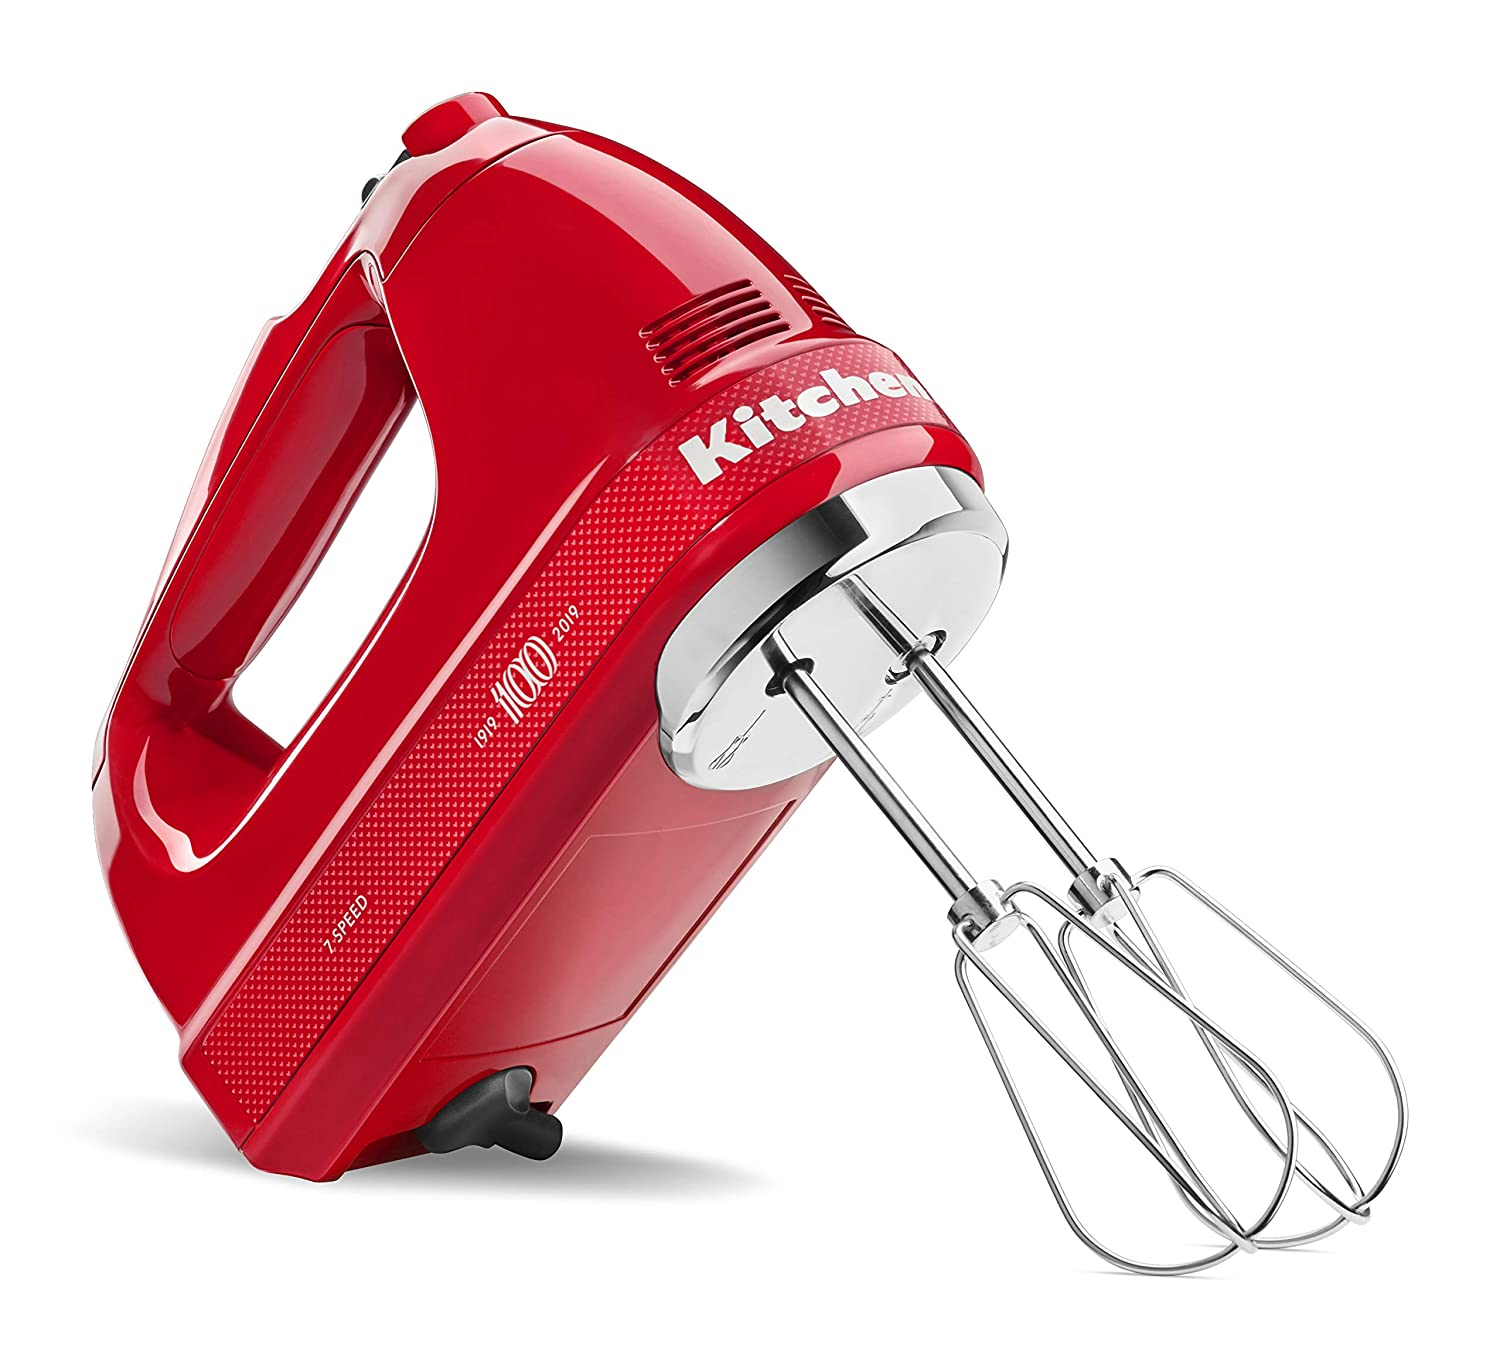 KitchenAid KHM7210QHSD 100 Year Limited Edition Queen of Hearts Hand Mixer 7 Speed Passion Red